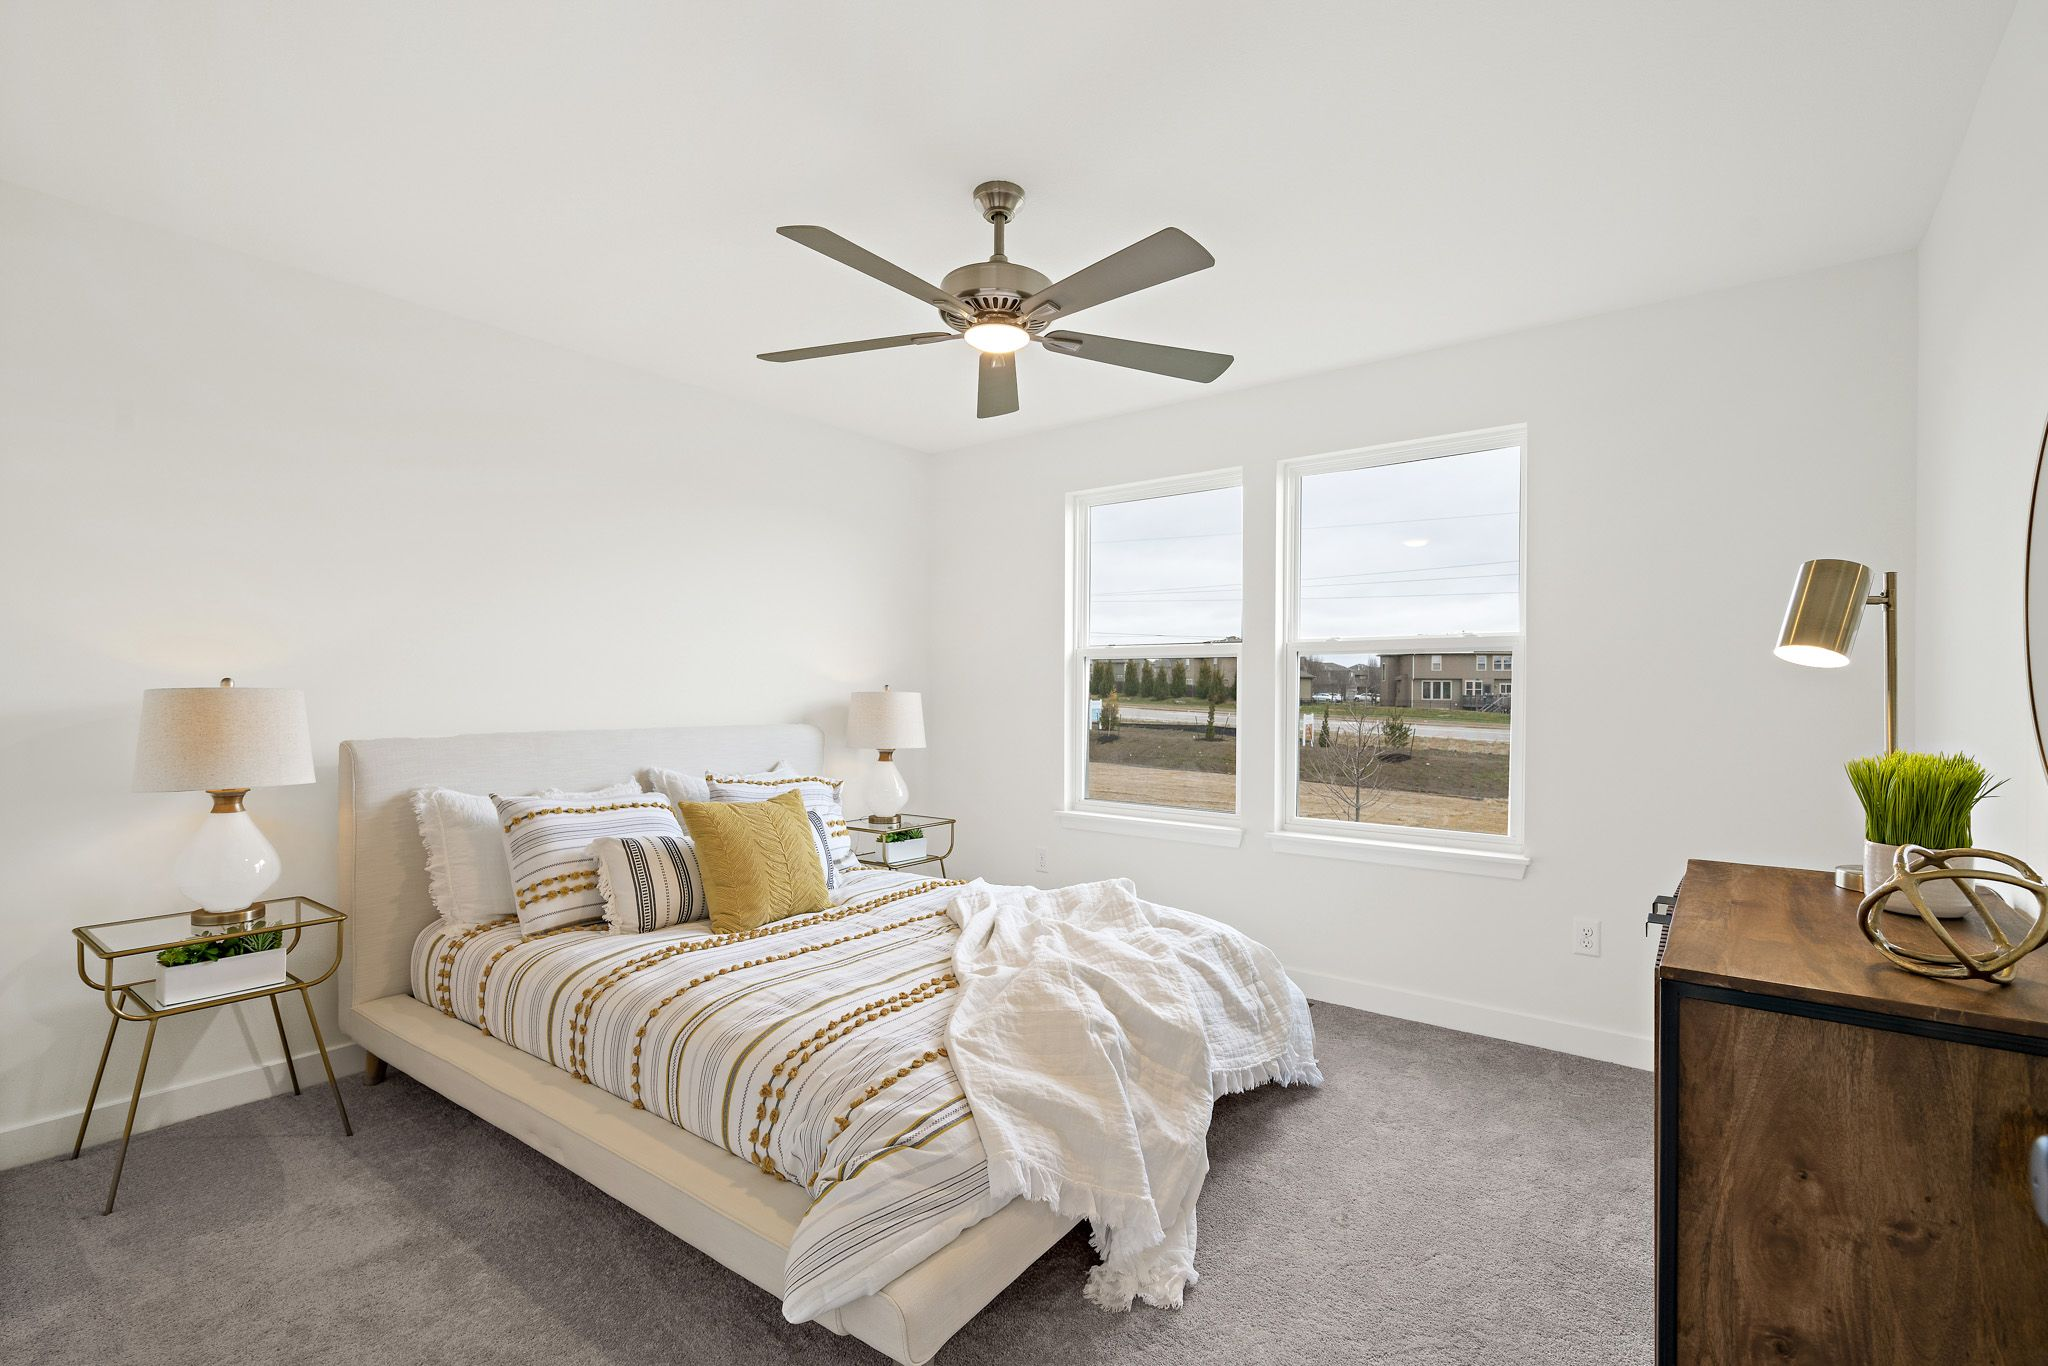 Bedroom featured in the sapphire - contemporary By clover & hive in Kansas City, MO